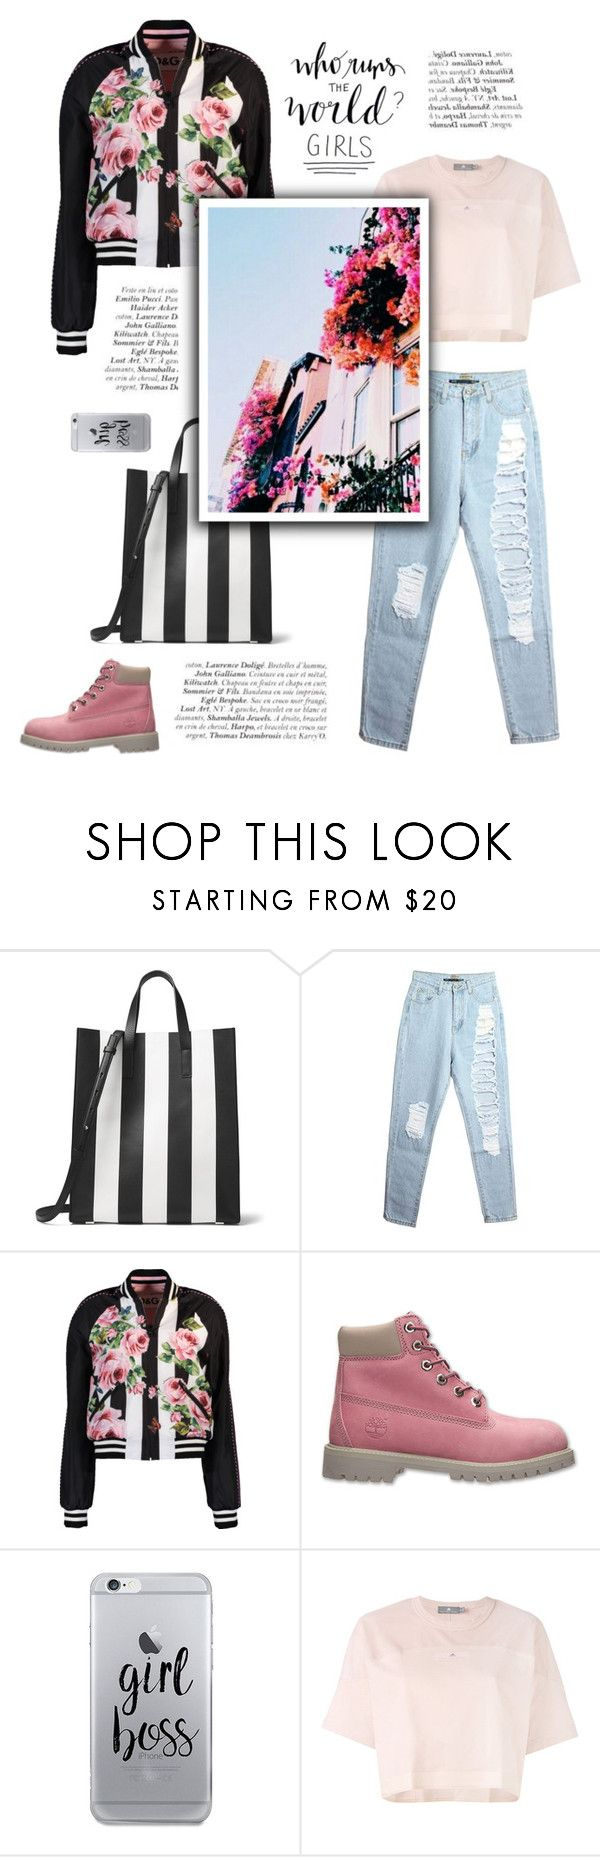 """""""Pink power"""" by little-vogue on Polyvore featuring Michael Kors, Dolce&Gabbana, Timberland, Fifth & Ninth, adidas, Pink, fashionset and polyvorefashion"""